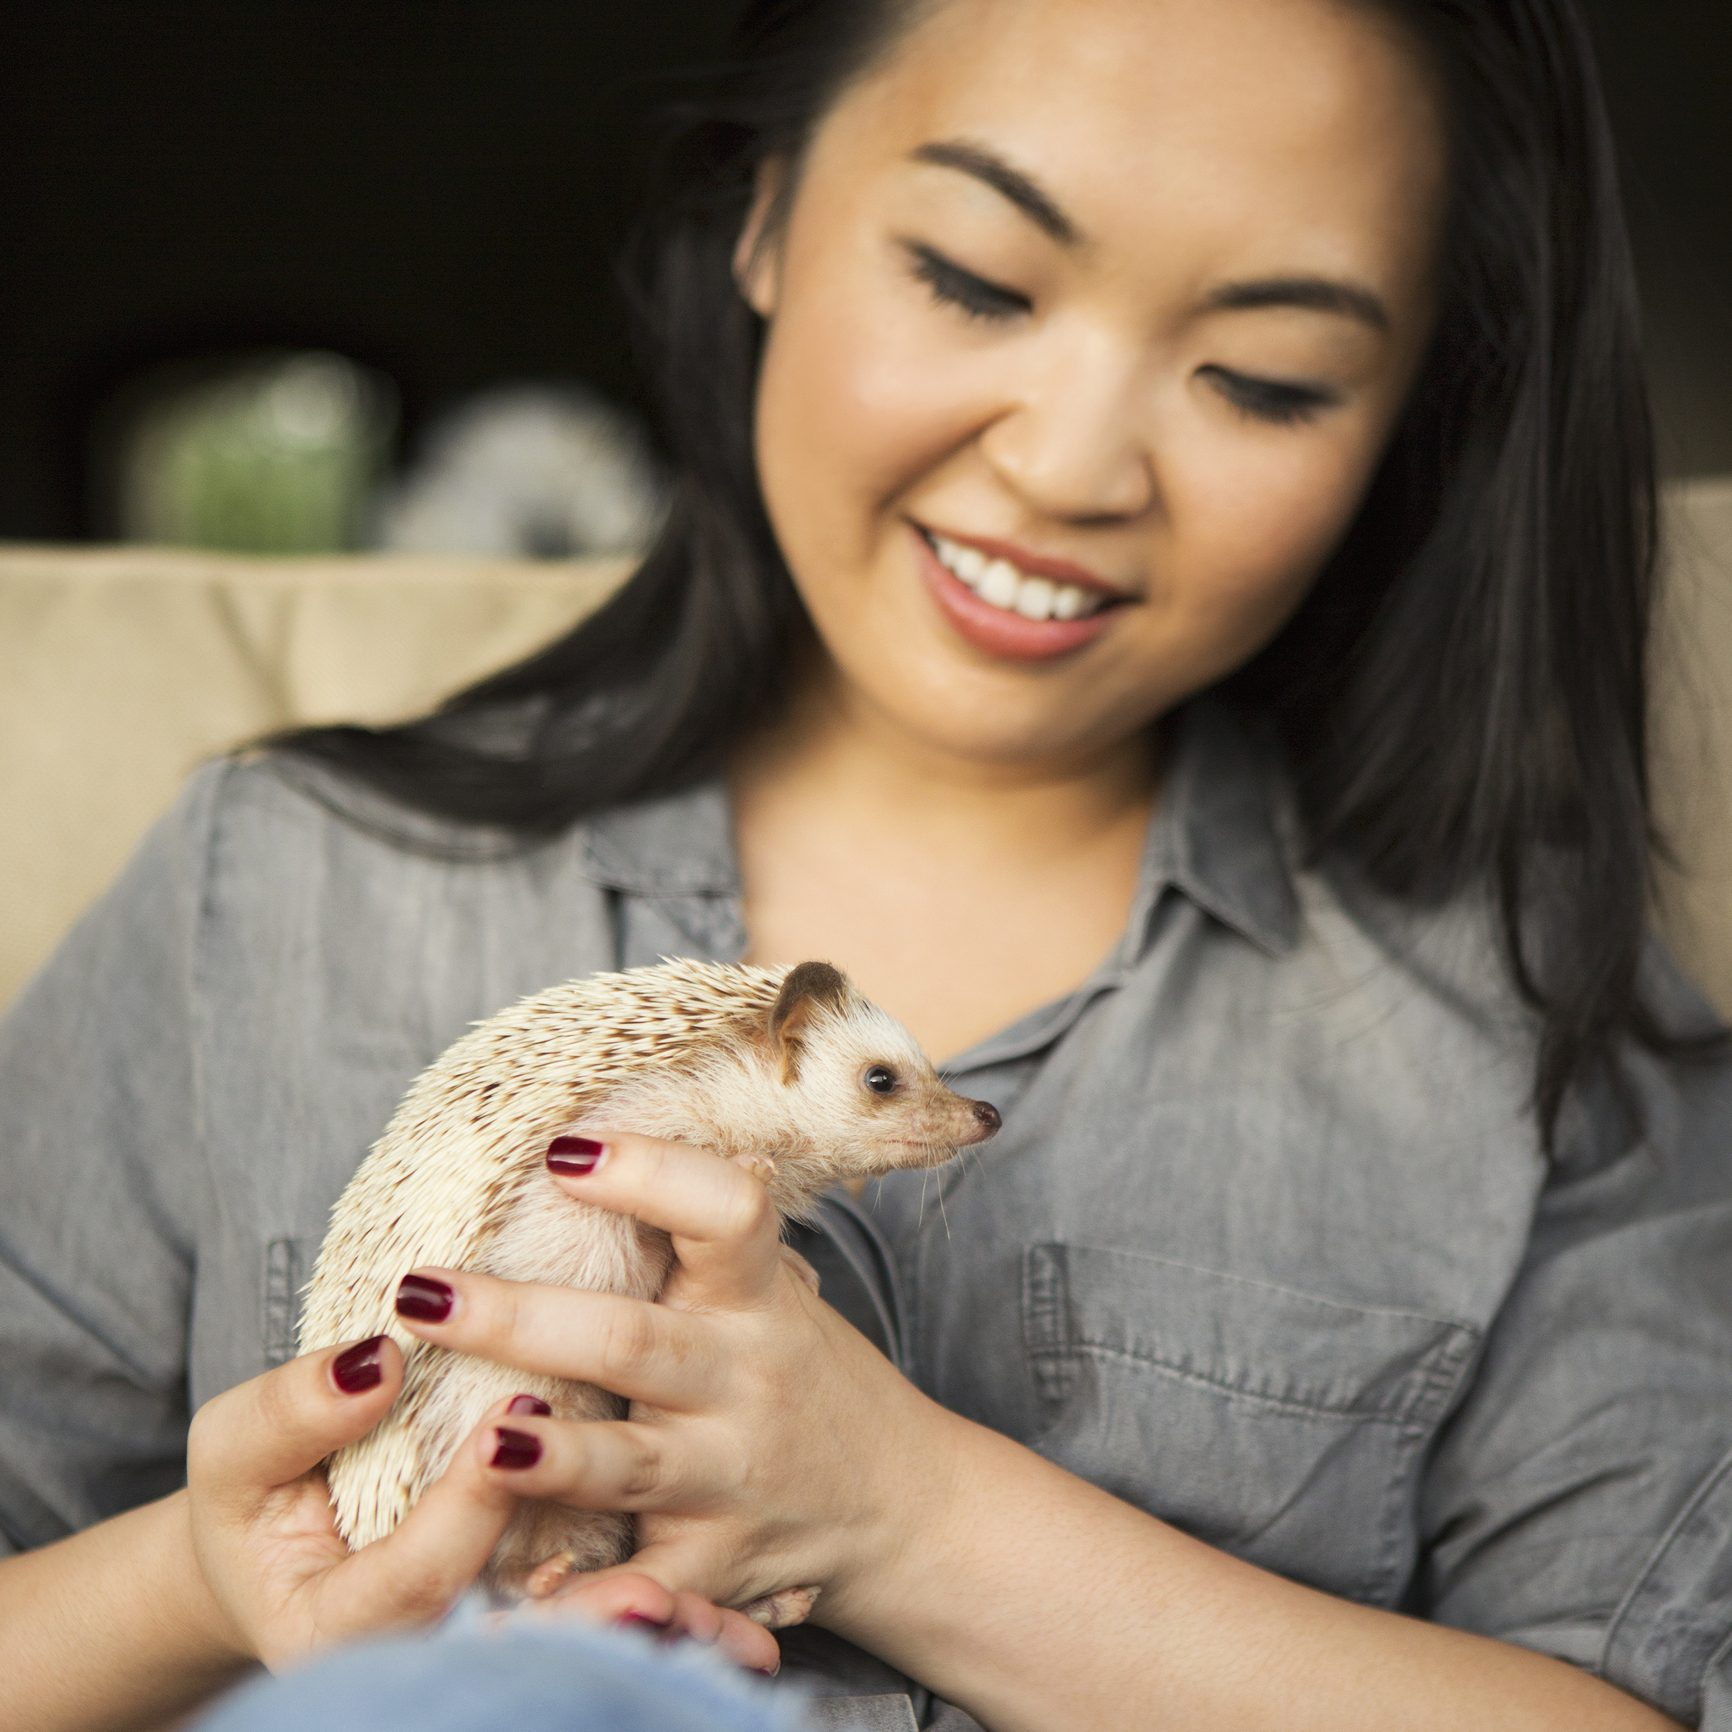 A Woman Holding A Hedgehog In Her Hands.